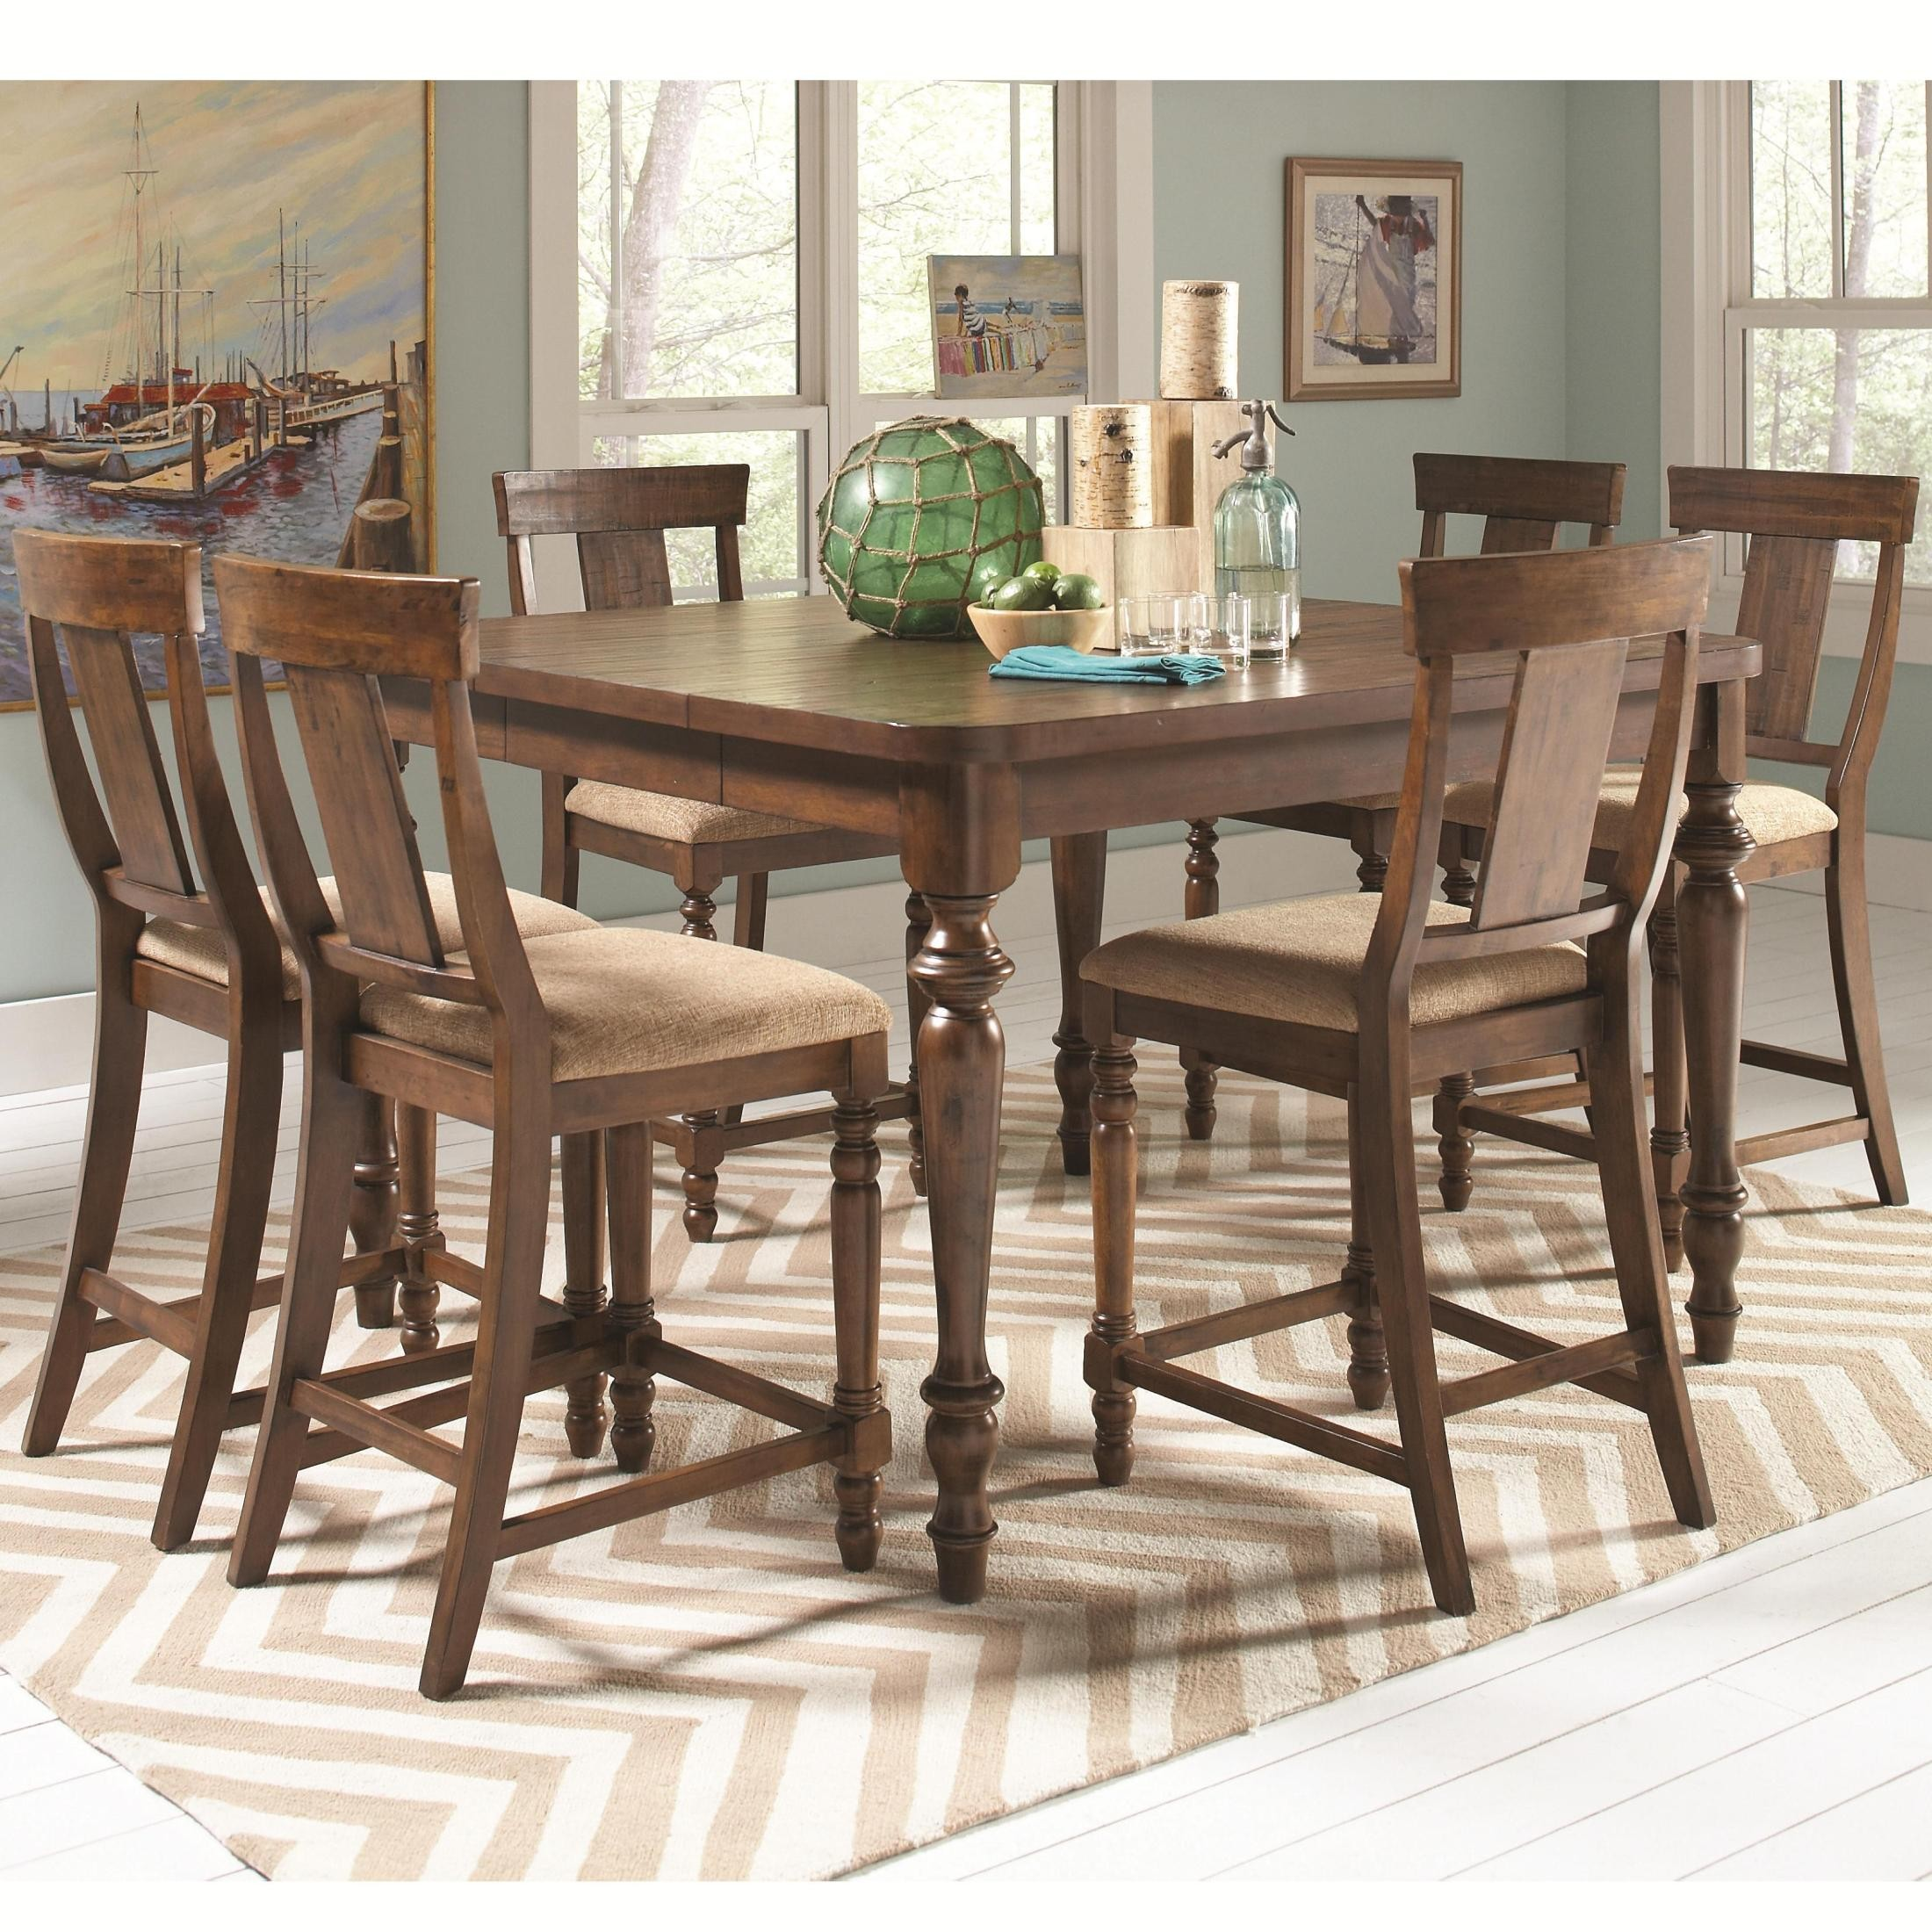 Jonas square extension counter height dining room set from for Counter height dining room sets